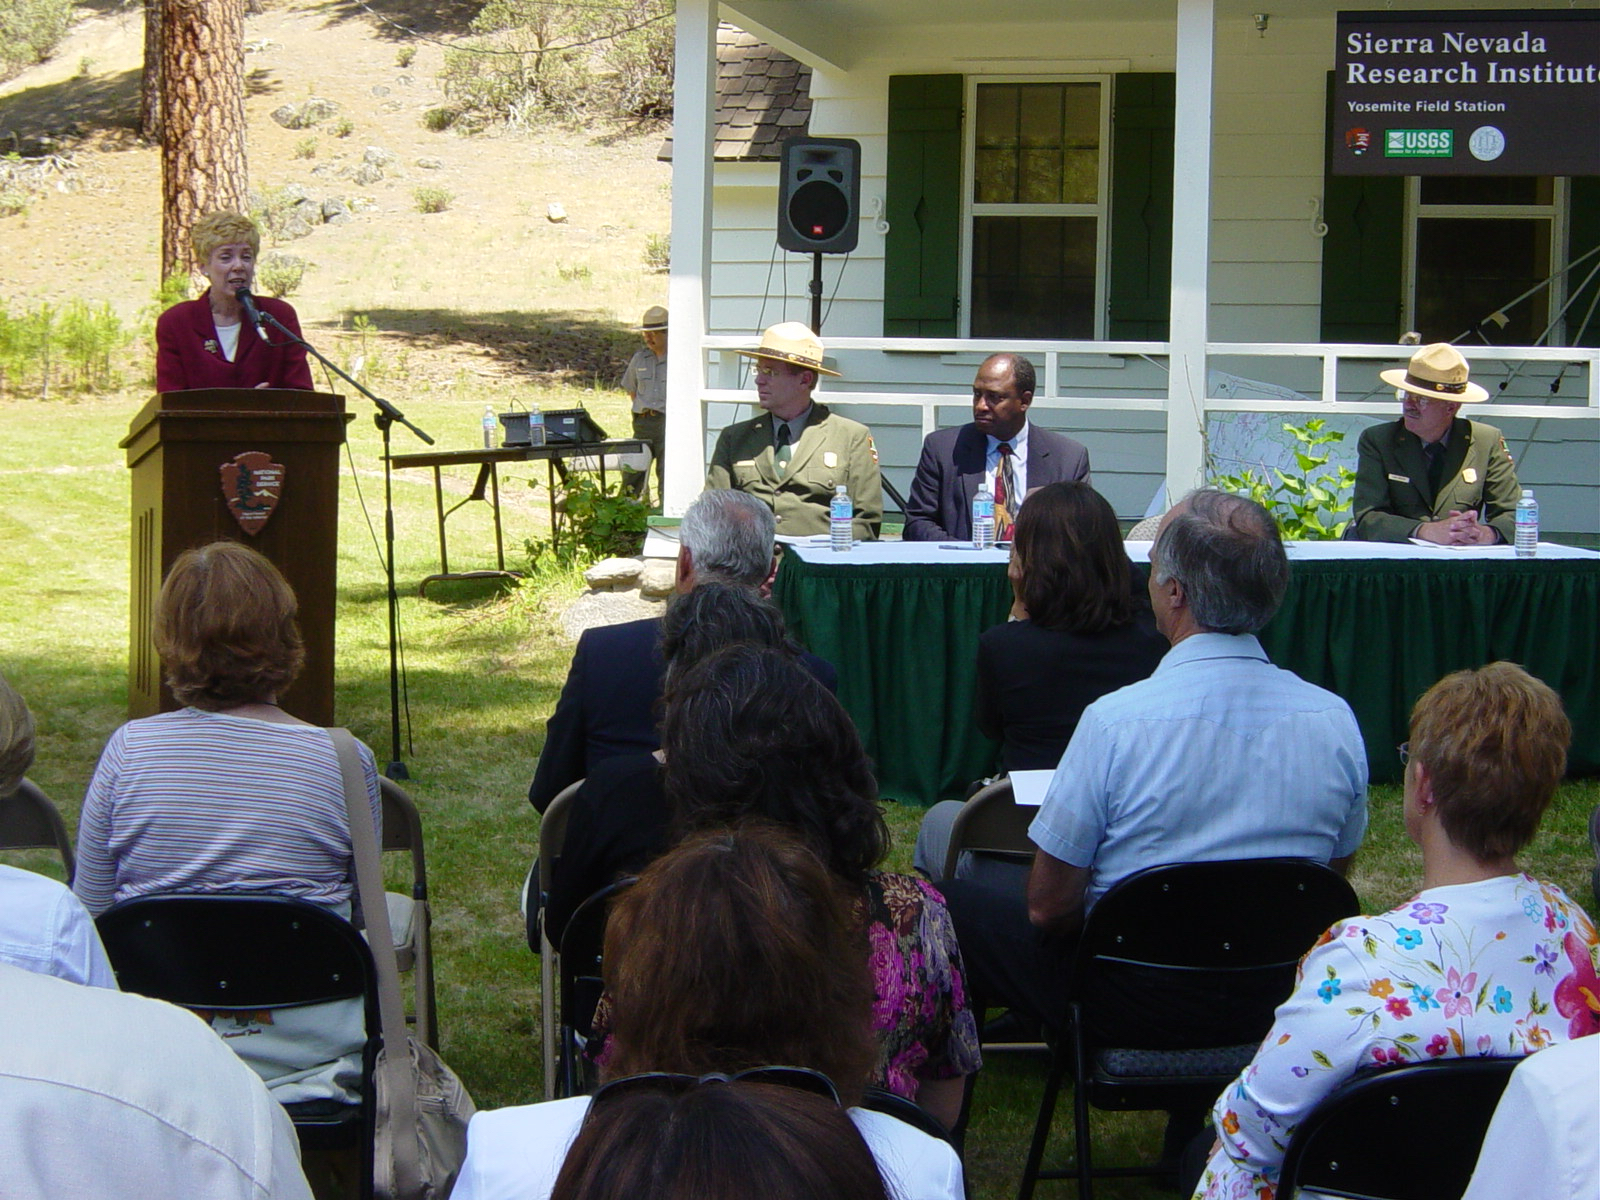 UC Merced founding Chancellor giving speech at SNRI Field Station